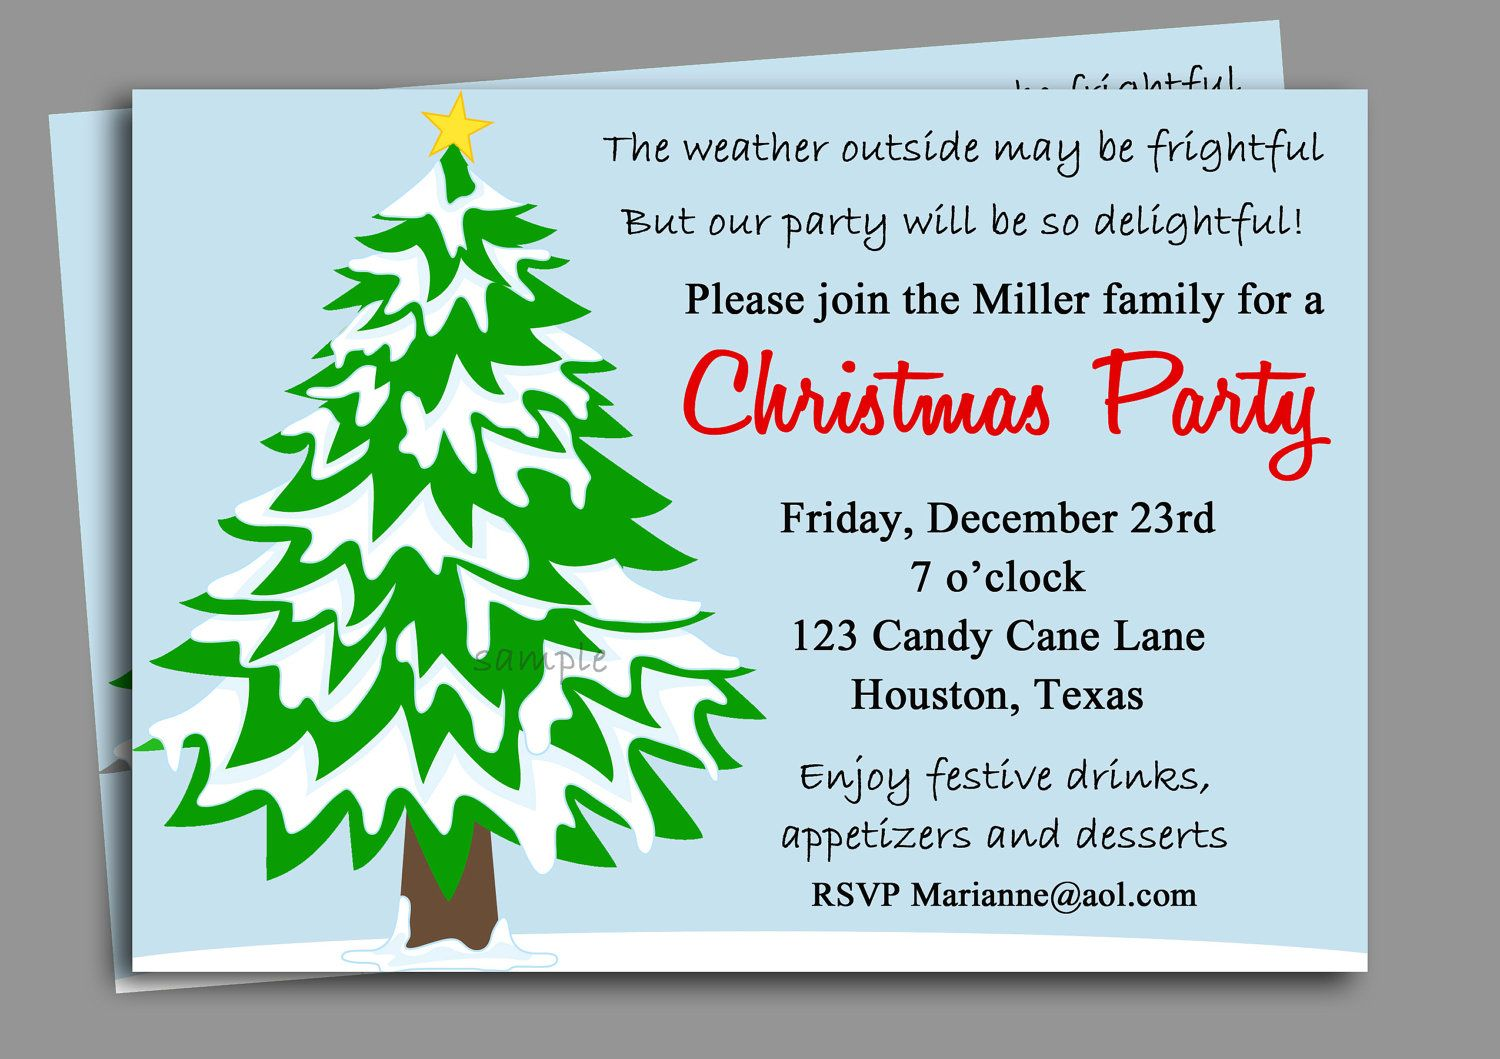 Beautiful Funny Christmas Party Invitation Wording Ideas Part - 13: Christmas Party Invitation Printable - Winter Wonderland By ThatPartyChick  On Etsy